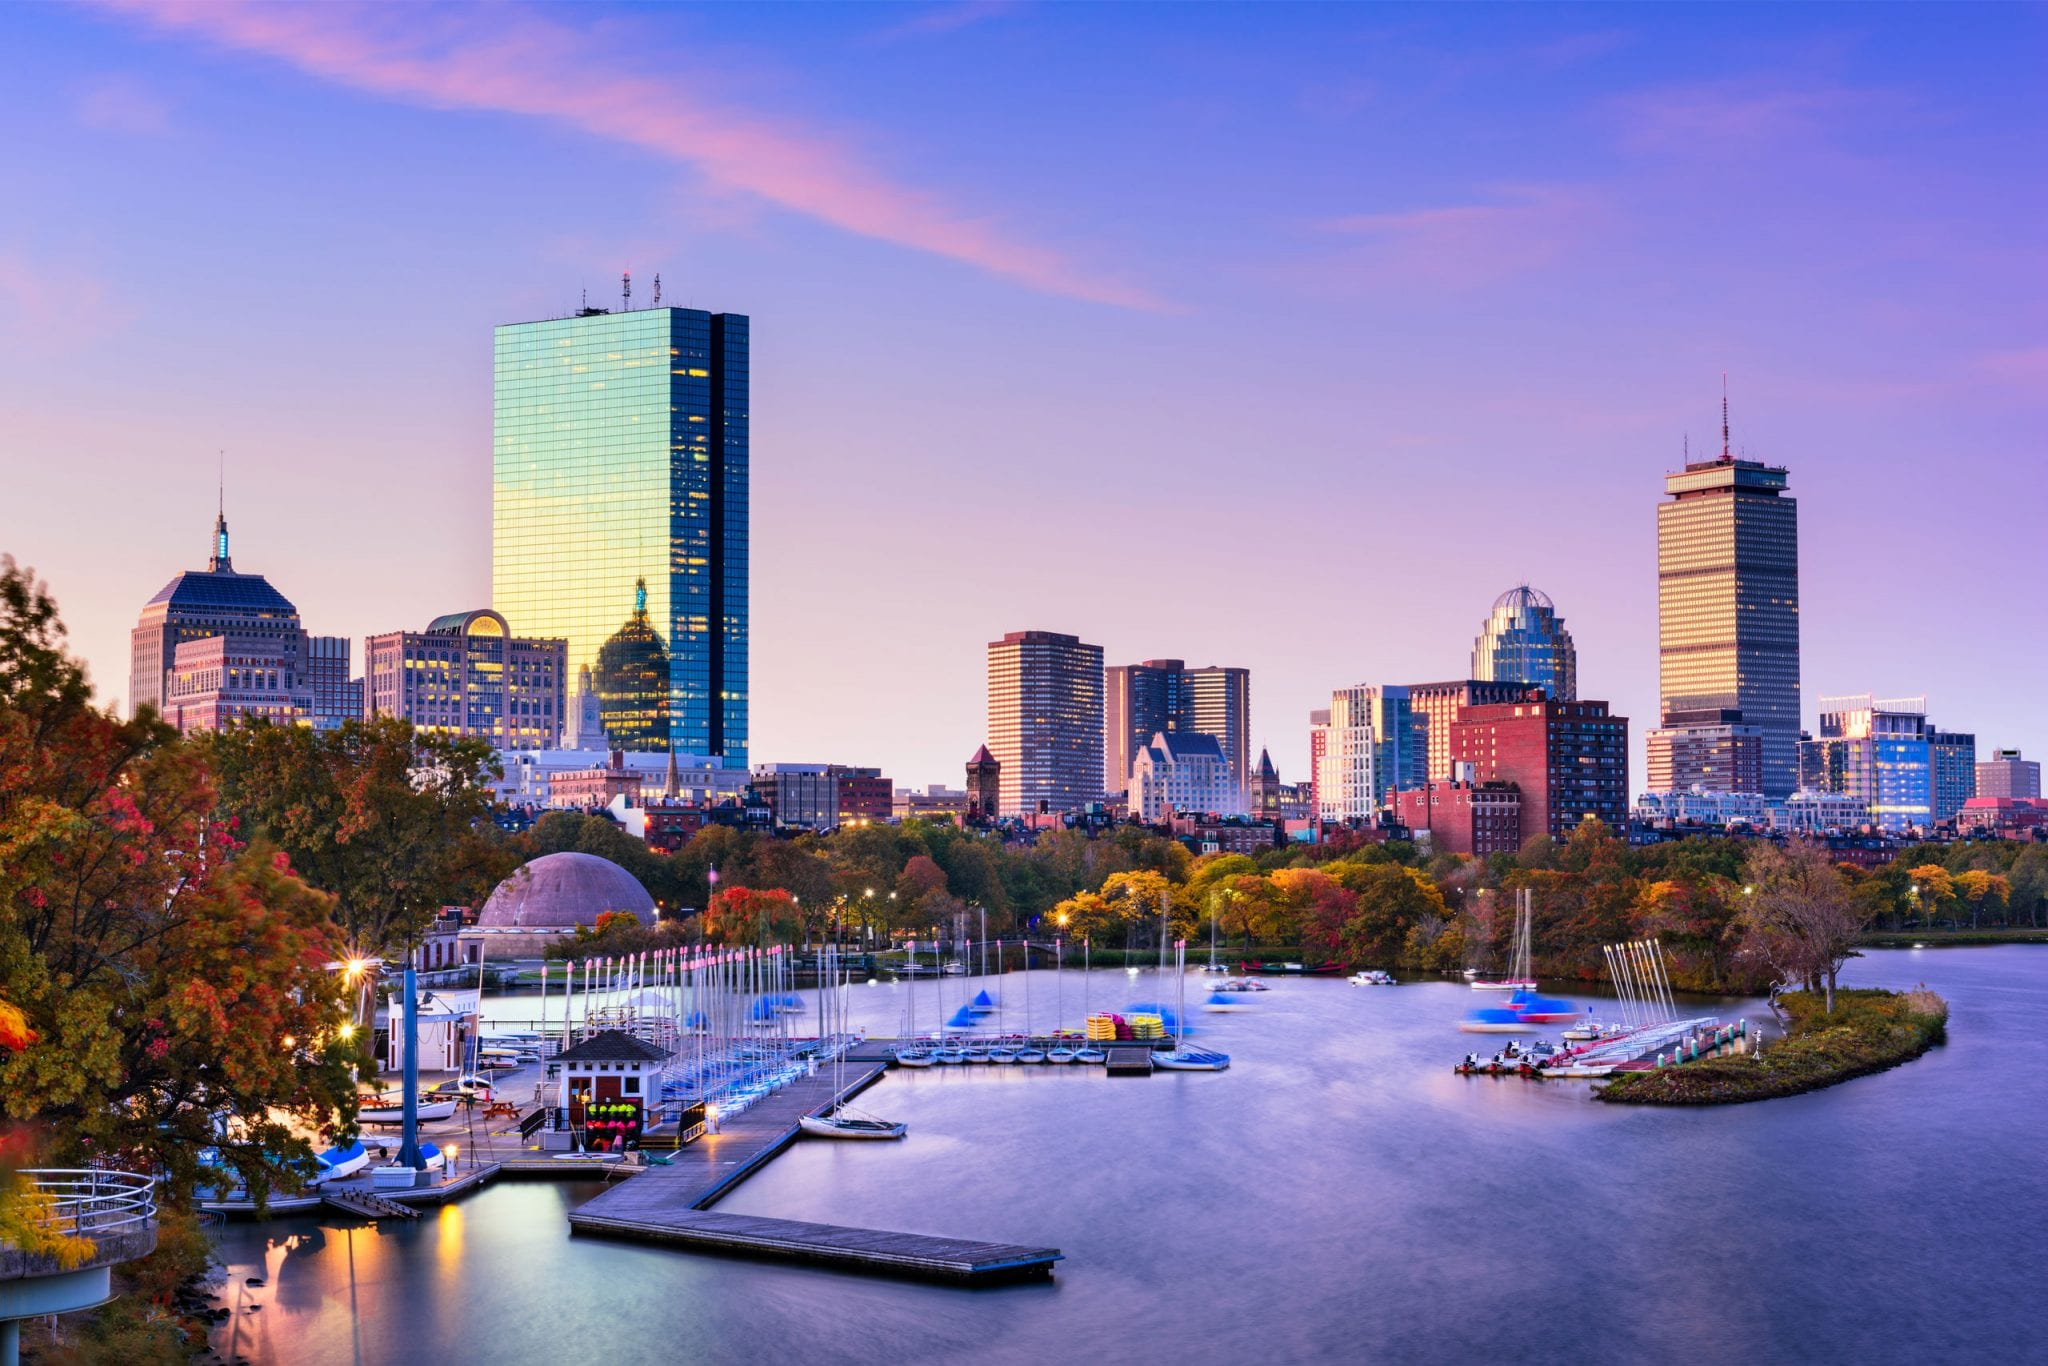 Rhode Island Becomes the Latest State to Offer Legal Sports Betting